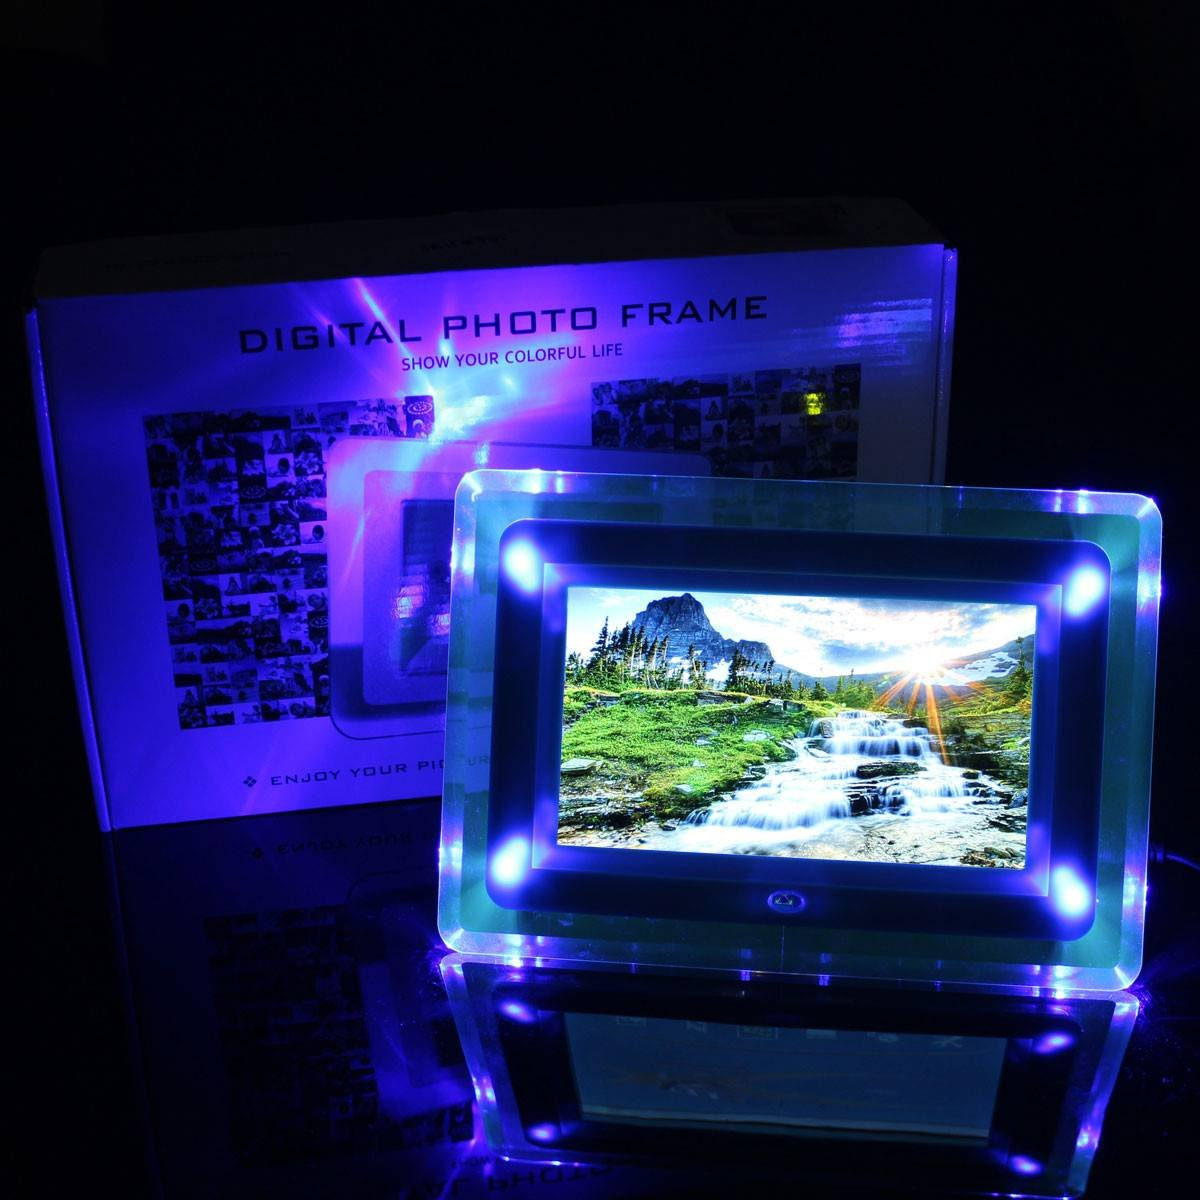 INSMA 7 Inch TFT-LCD Remote Control Digital Photo Frame MP3 Player Alarm With LED Light Blue